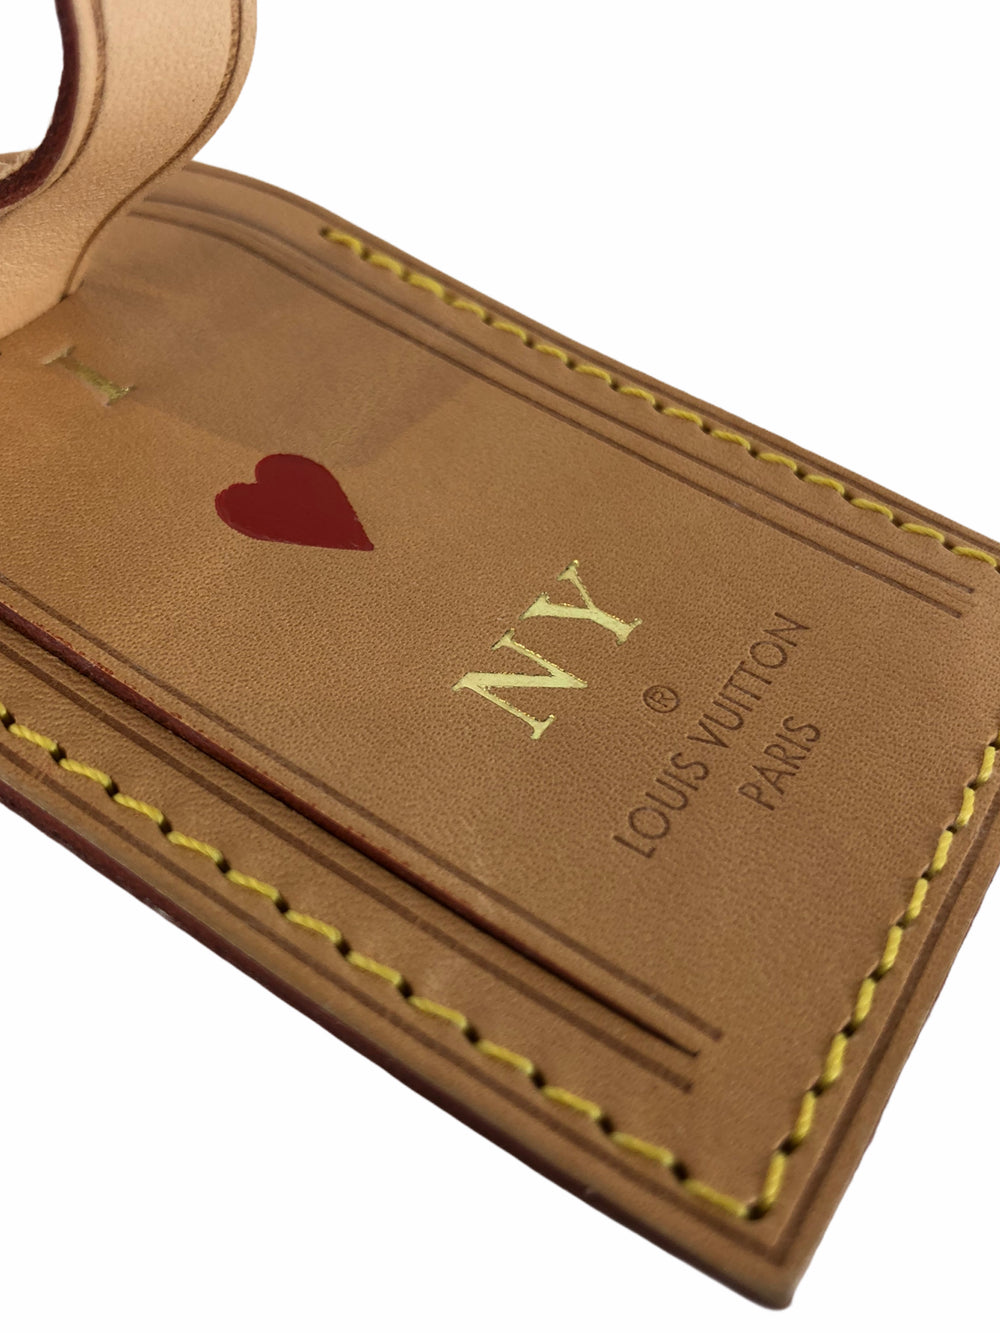 Louis Vuitton 'I Heart NY' Luggage Tag  - As Seen on Instagram 27/09/2020